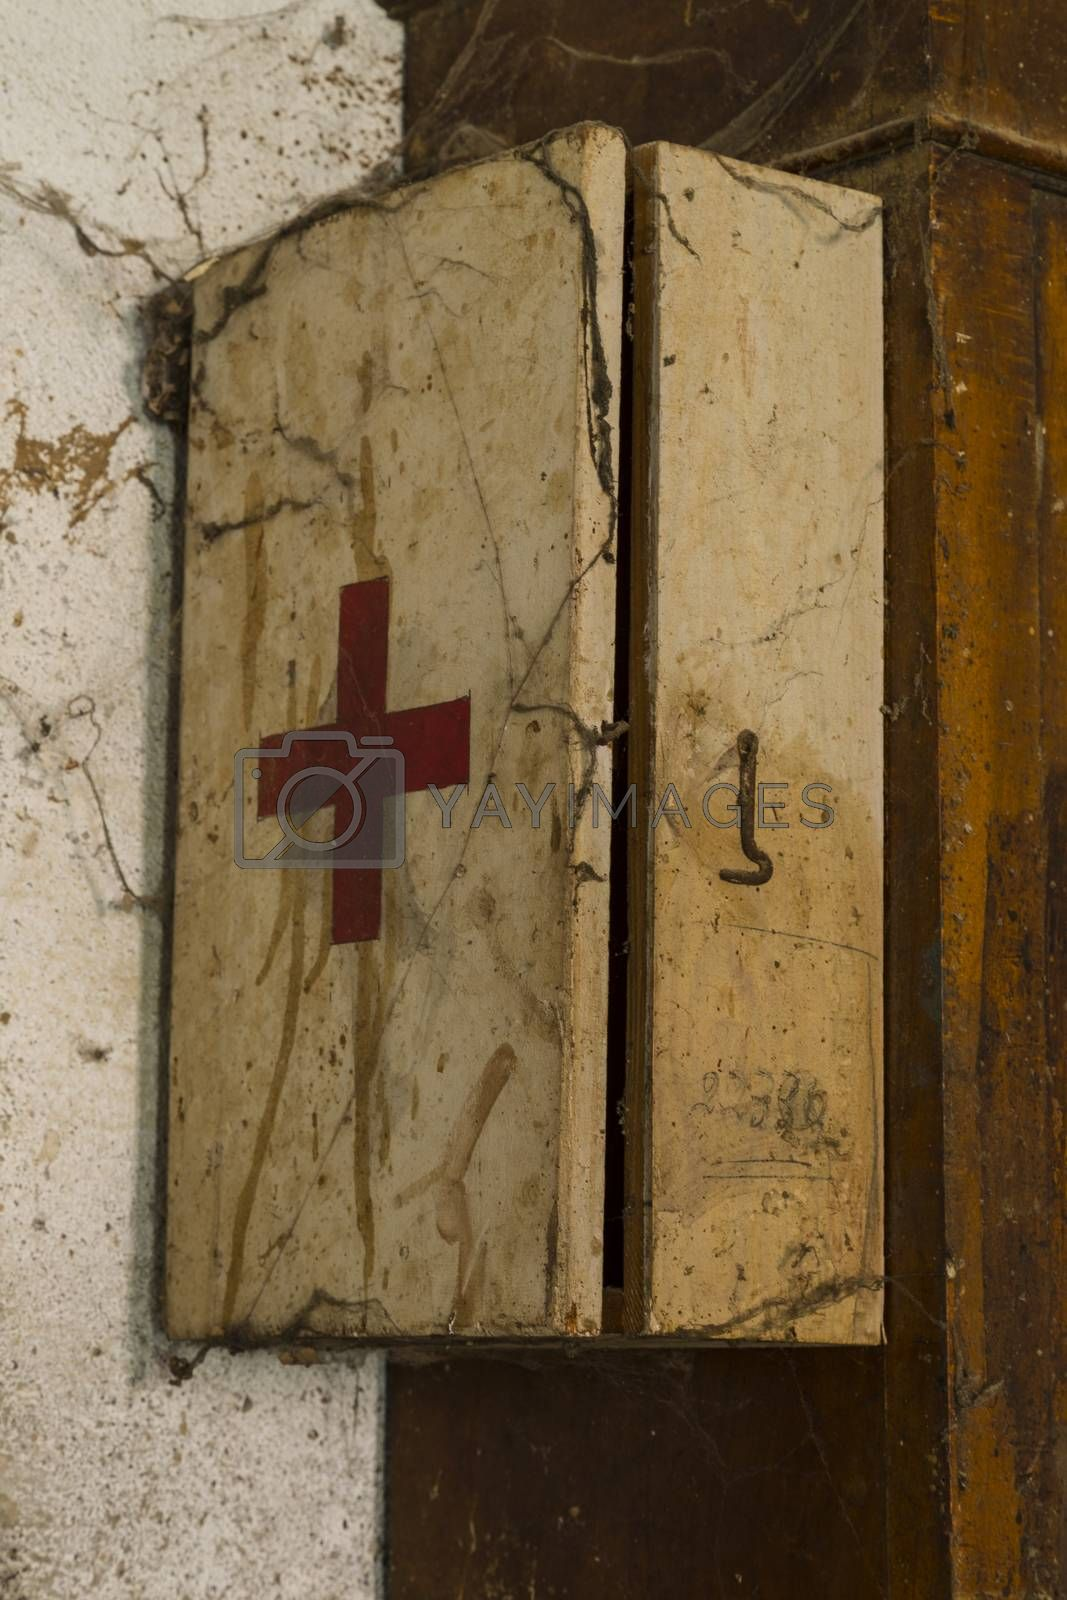 An old first aid kit on a dirty and rusty wall covered by cobwebs